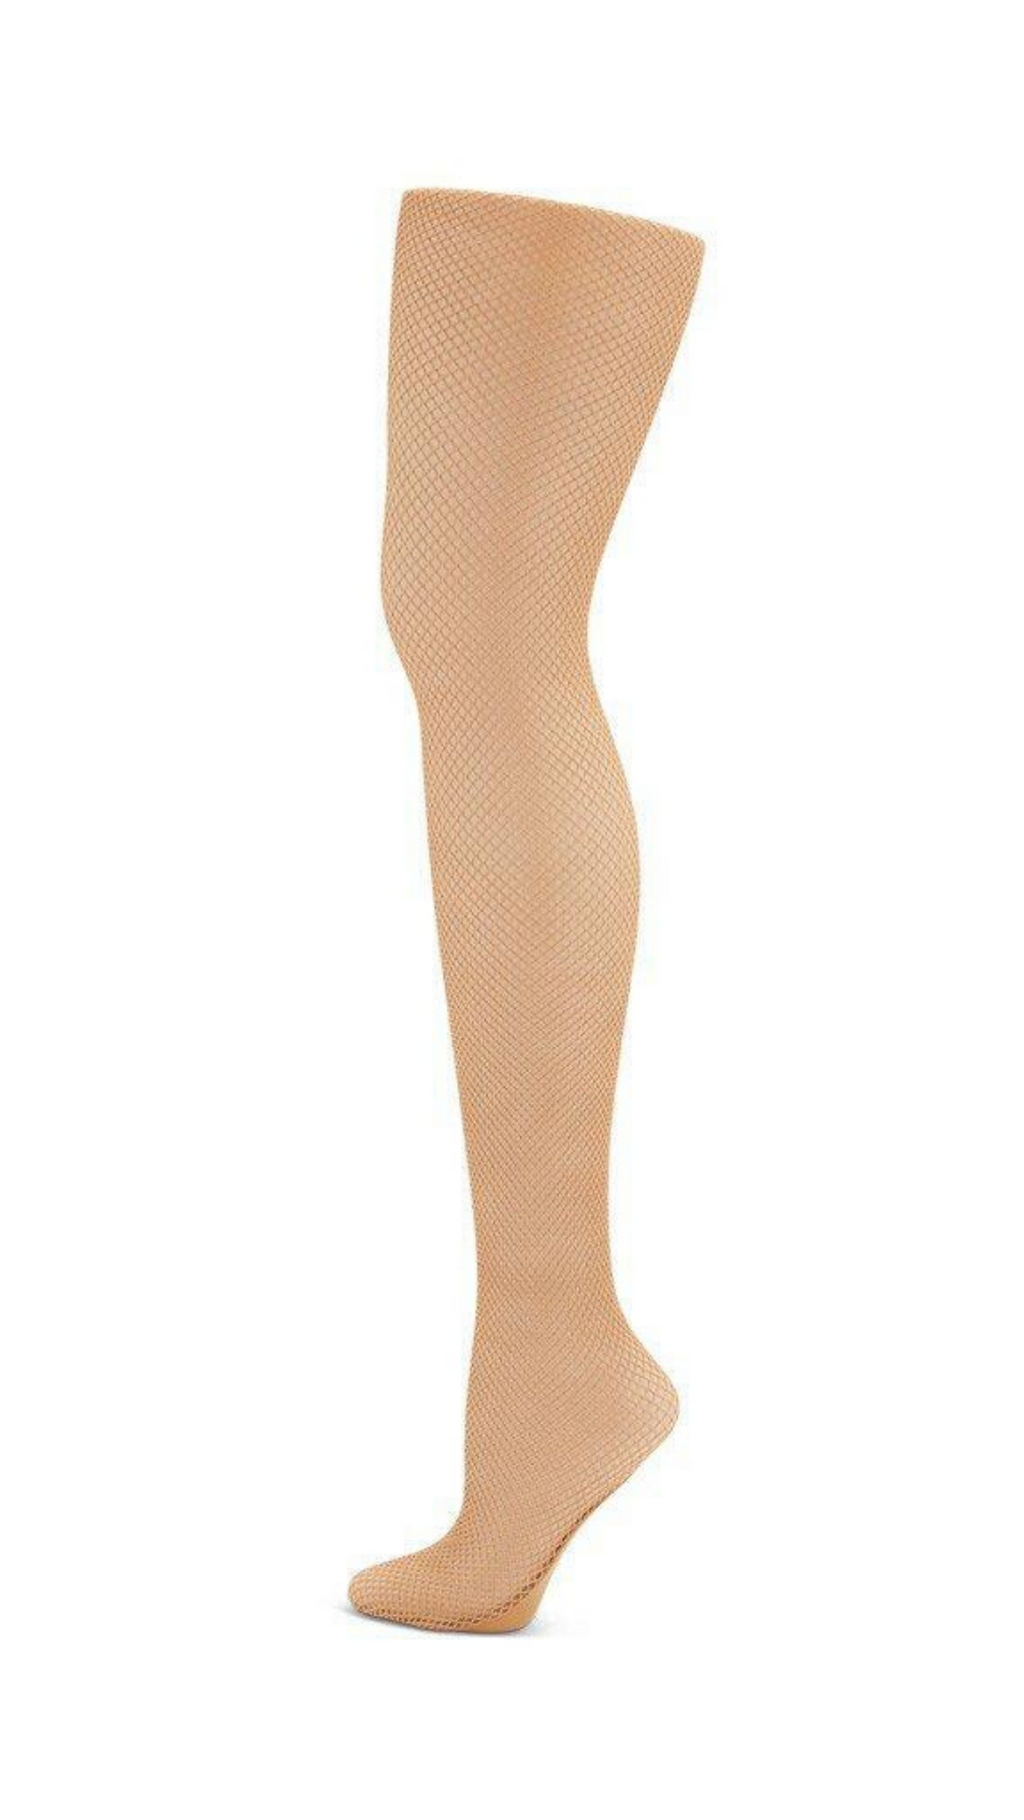 Professional Seamless Fishnet Tights 3000-Adult